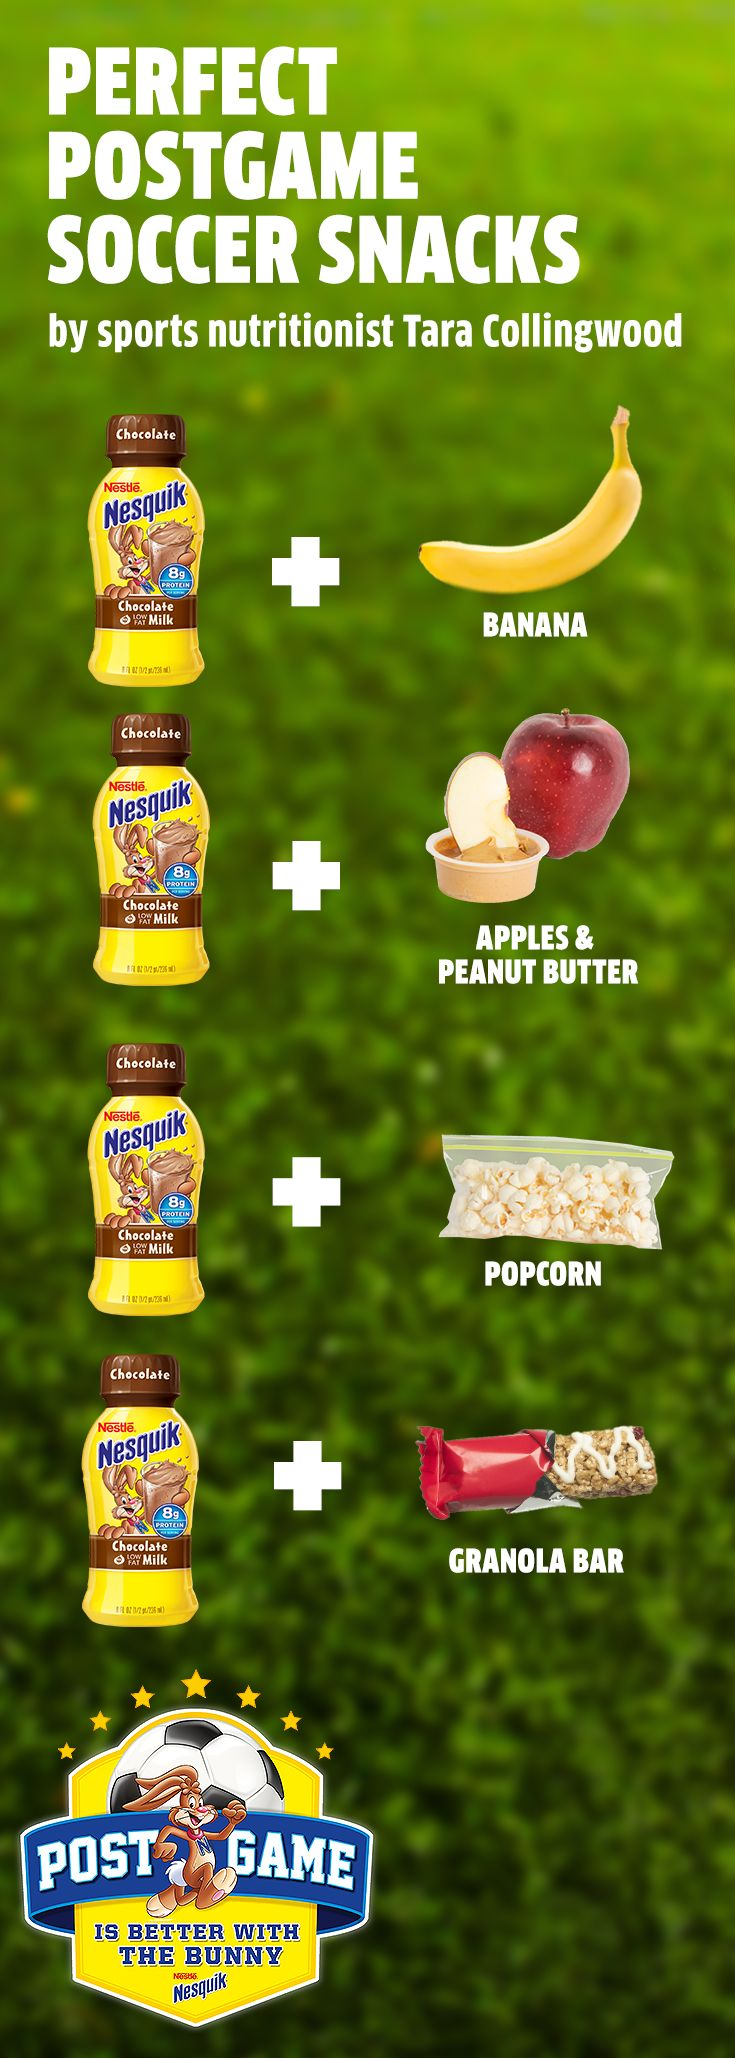 """As team mom there's a lot to worry about — so we teamed up with sports nutritionist Tara Collingwood, MS, RDN, CSSD to create a """"tip sheet"""" full of healthy postgame snack ideas. Pair a Nesquik with one of these nutritious options for an all-around balanced snack for young soccer stars. Research shows that low-fat chocolate milk, with the ideal 3:1 ratio of carbohydrates to protein, is a great option to nourish tired muscles after prolonged activity. The team will love these winning combos!"""